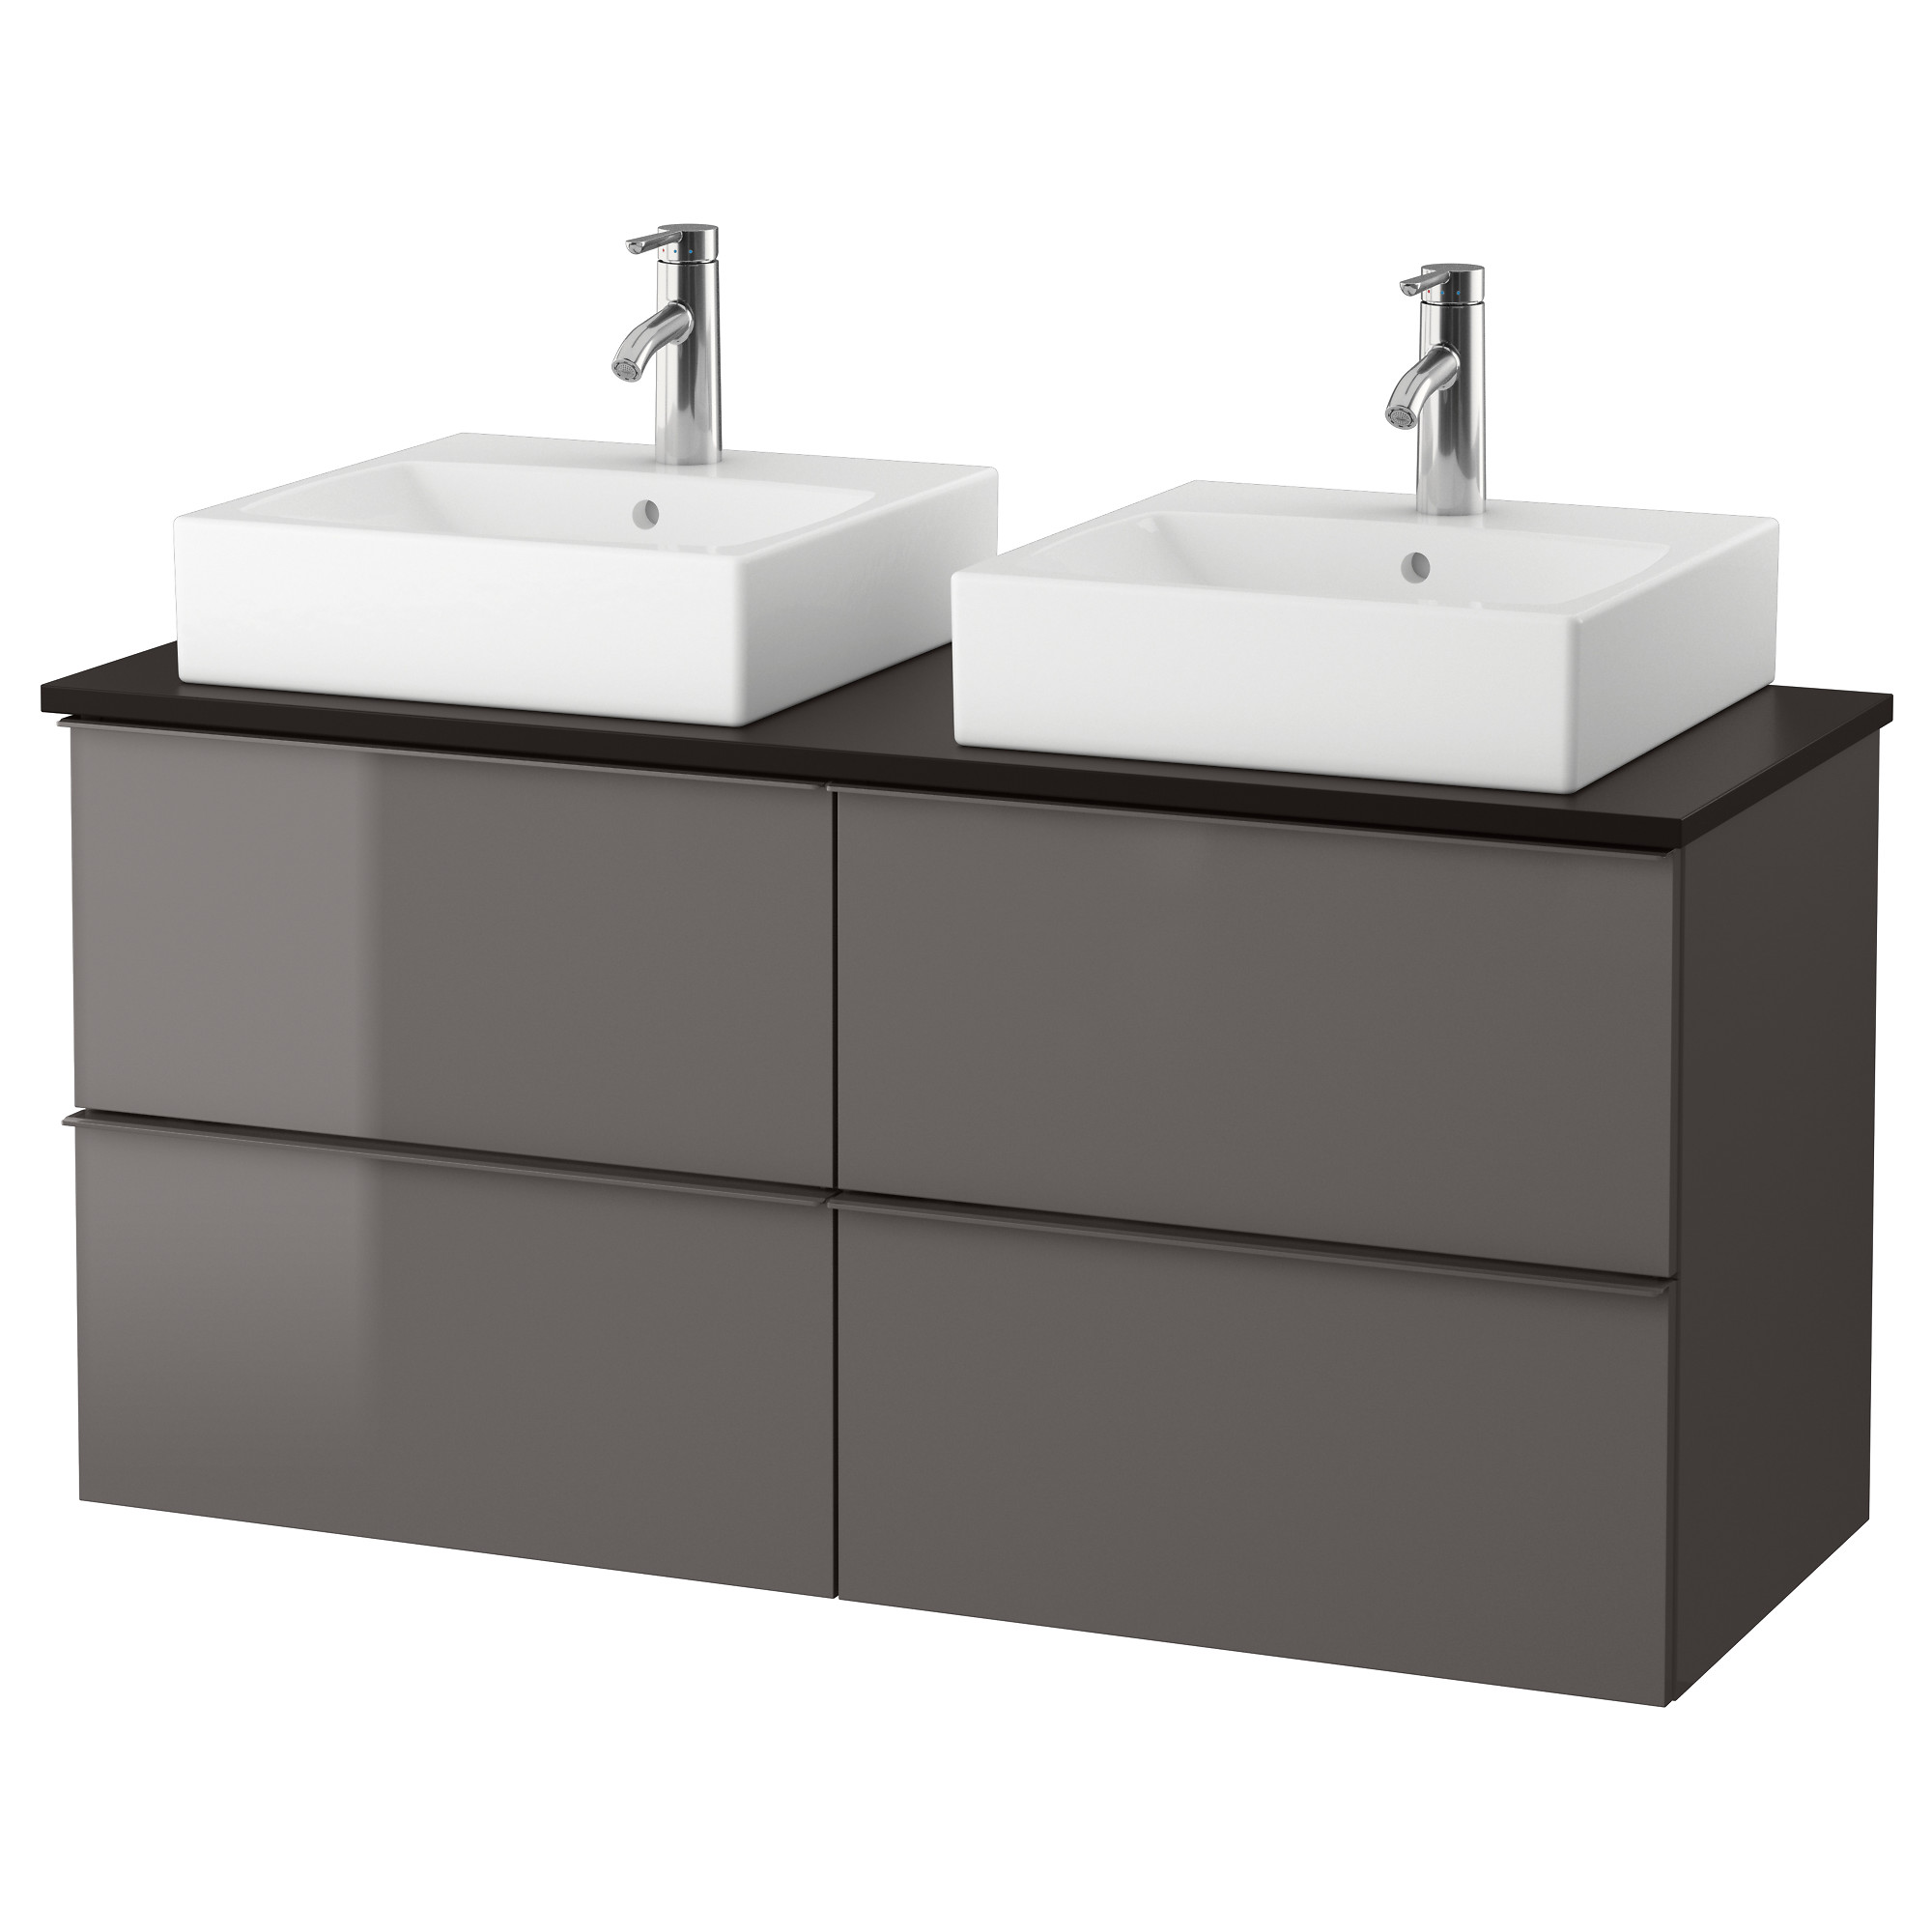 bathroom vanity without sink top. GODMORGON  TOLKEN T RNVIKEN vanity countertop and 17 3 4 sink Bathroom Vanities Countertops IKEA